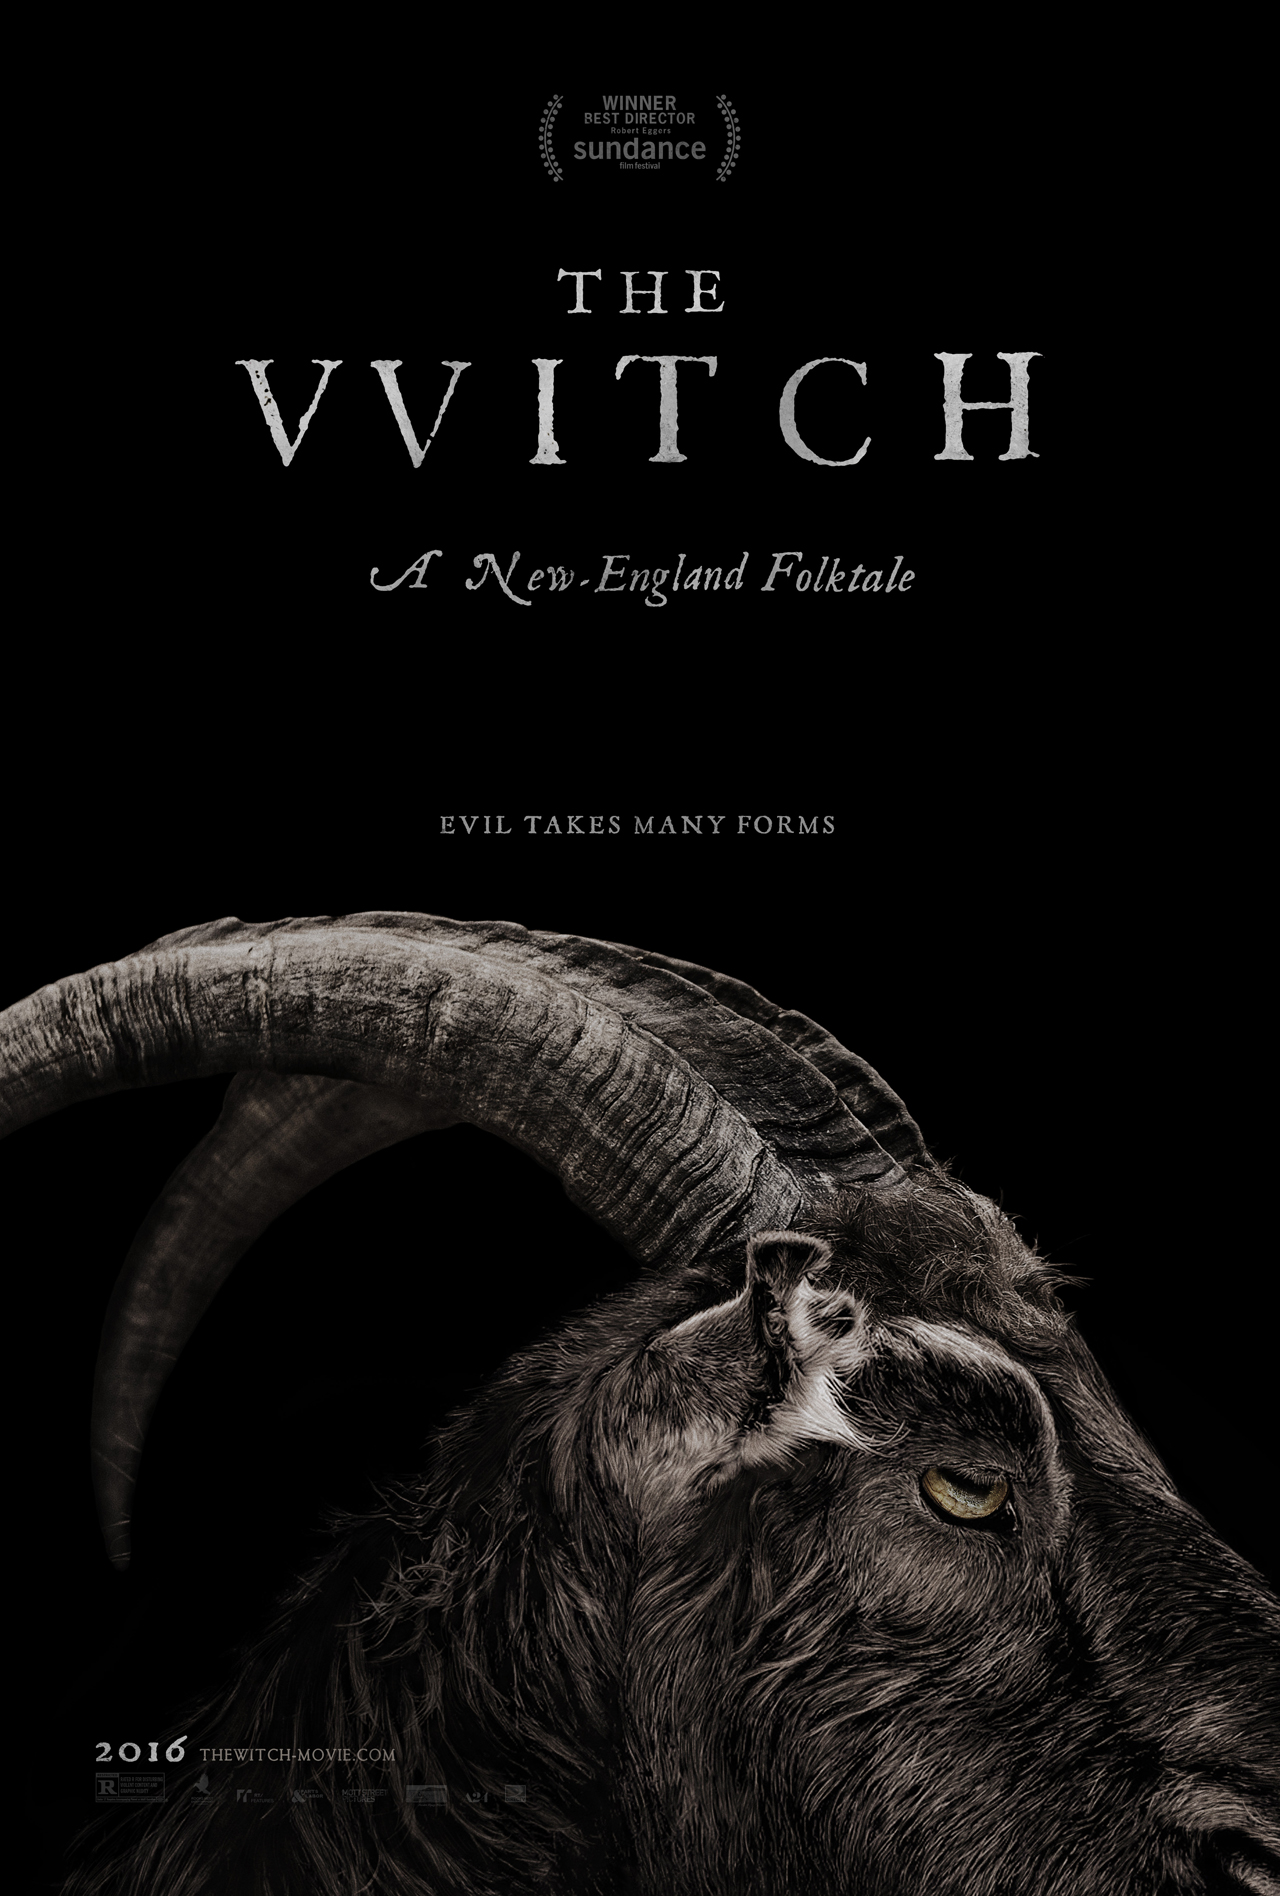 The Witch: il teaser poster del film horror diretto da Robert Eggers